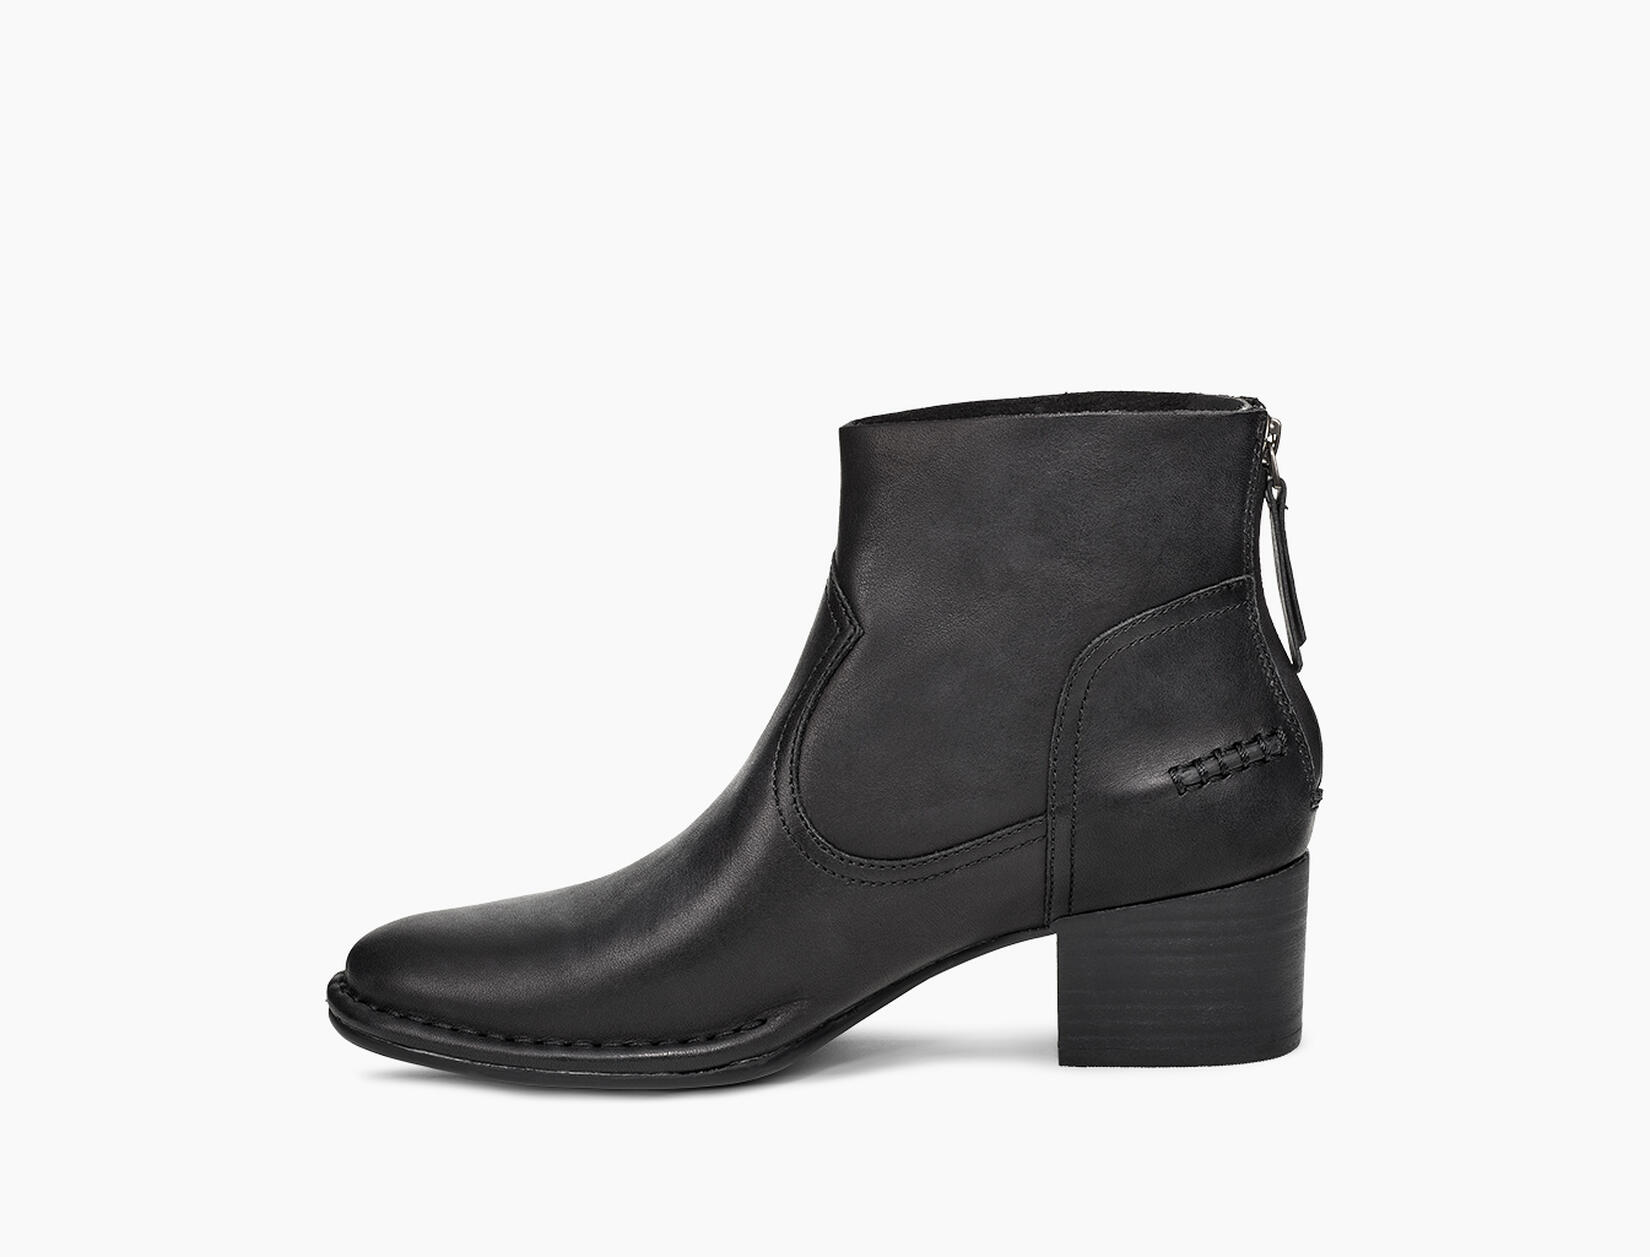 Bandara Leather Ankle Boot